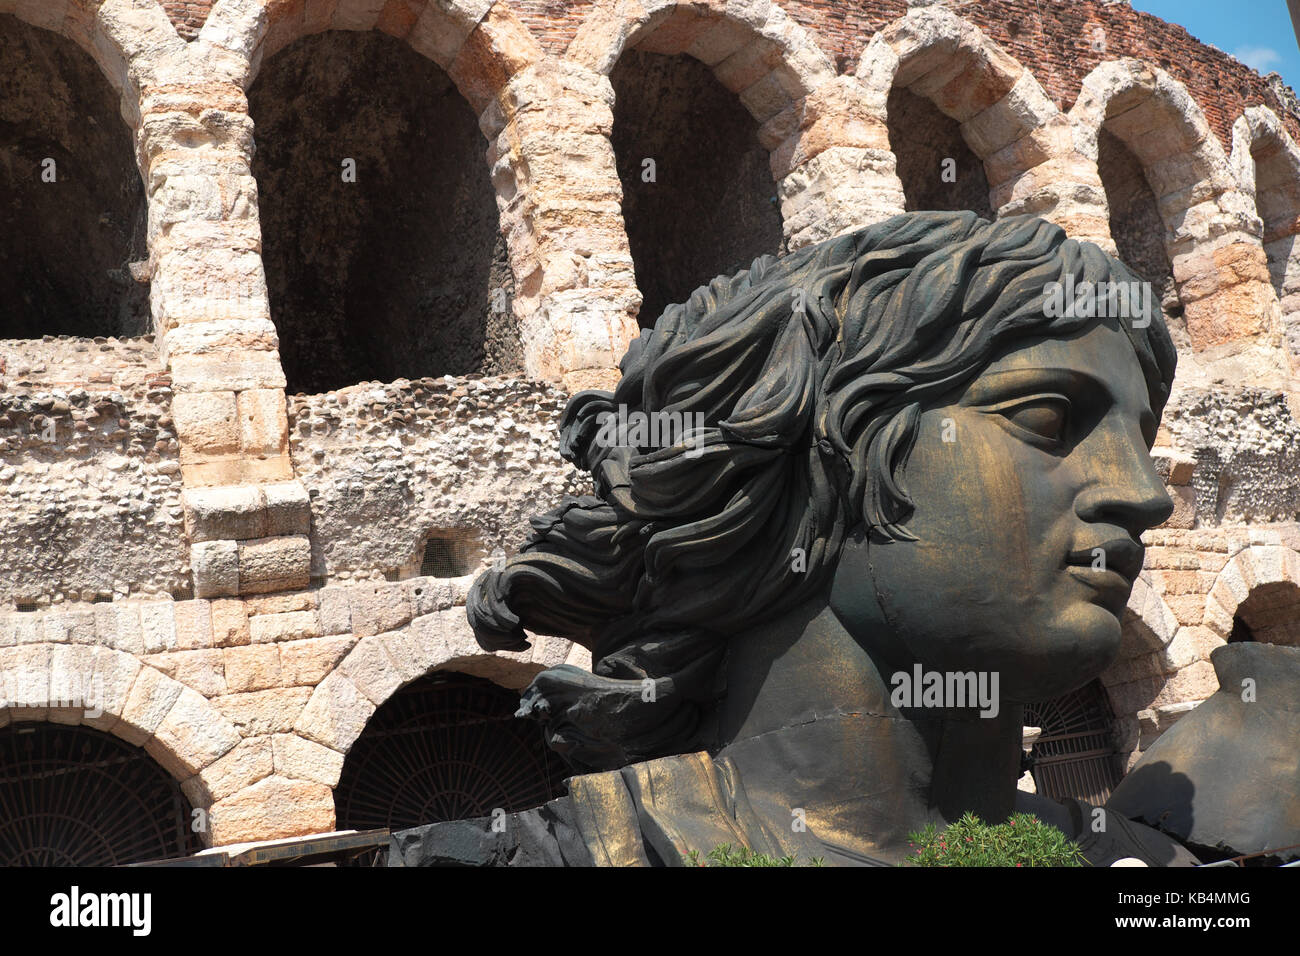 Verona, Italy - large opera props outside the ancient Roman Arena - Stock Image